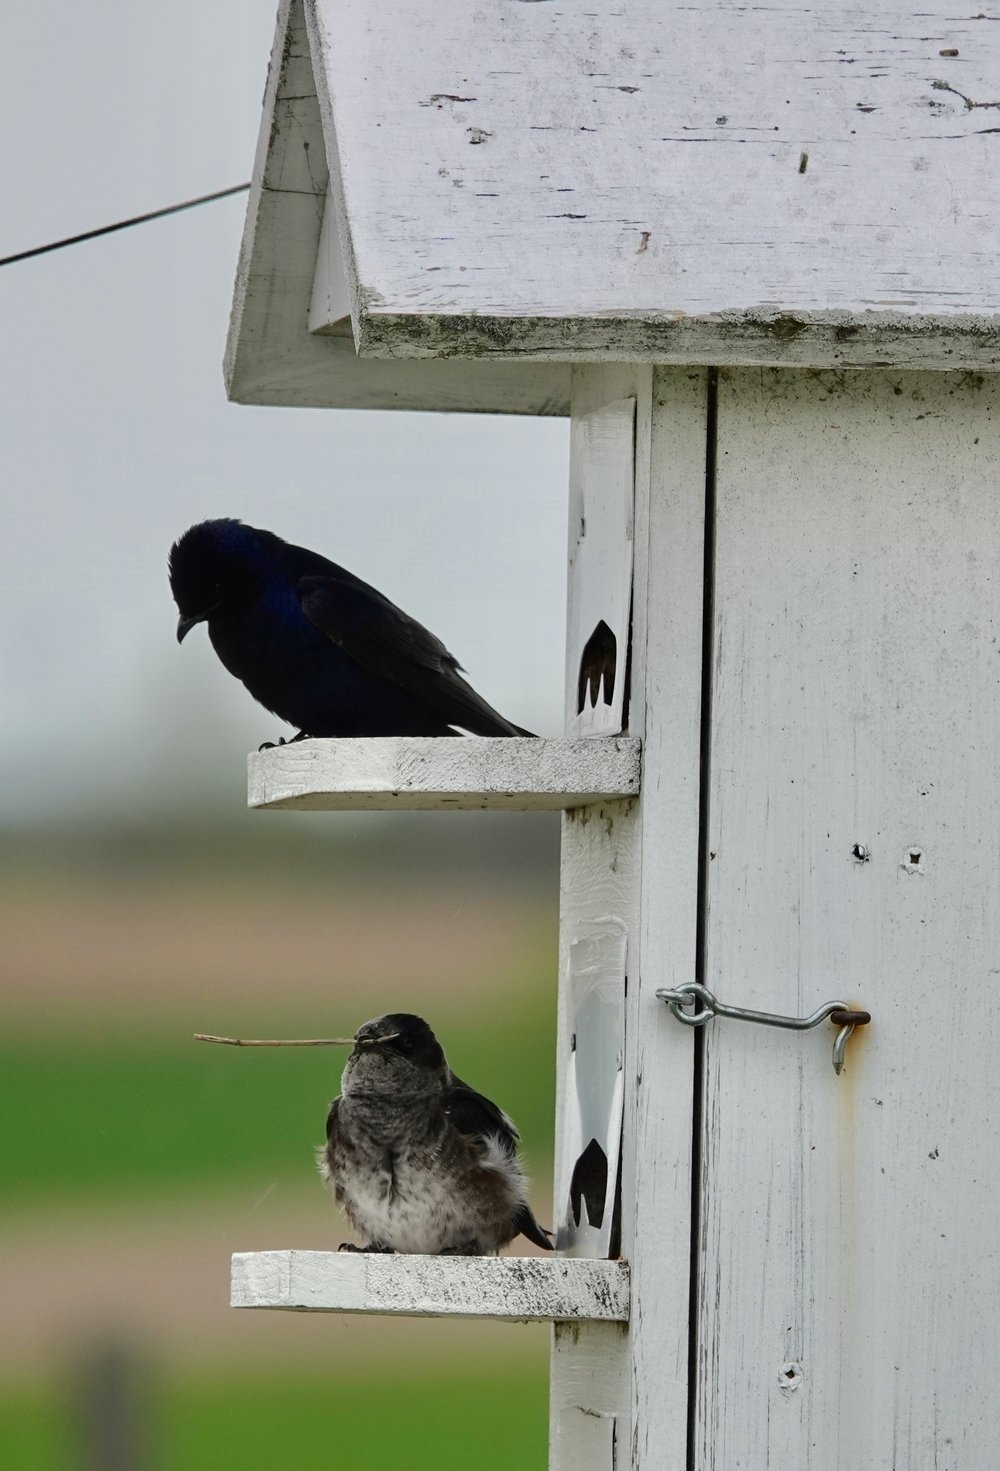 Purple martins returning to the nest after shopping at IKEA.